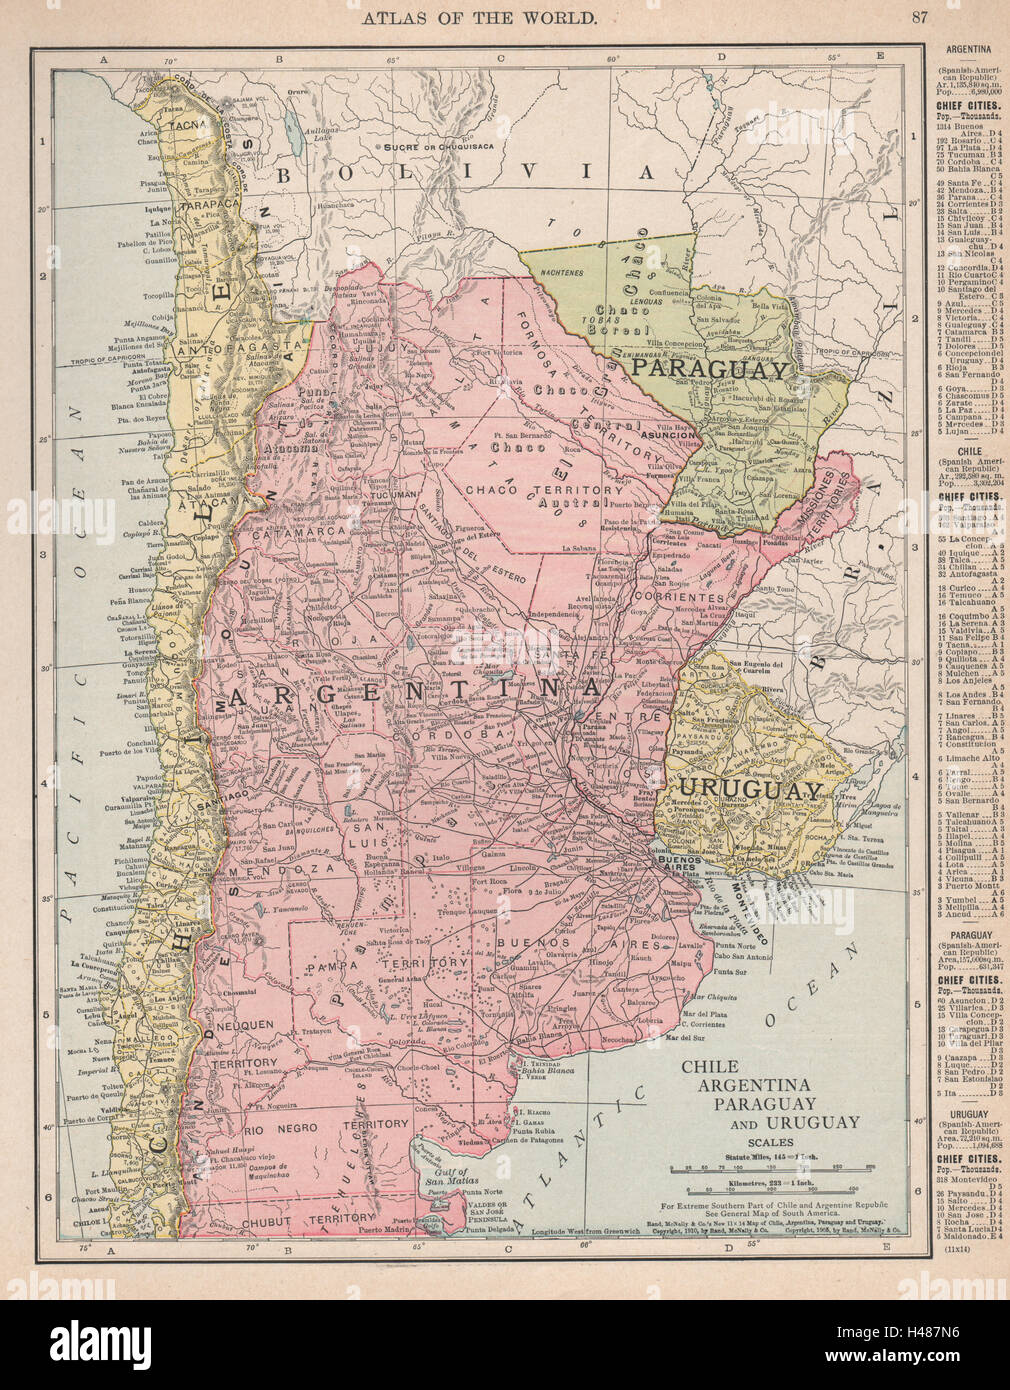 Chile Argentina Paraguay And Uruguay South America RAND - Uruguay map atlas